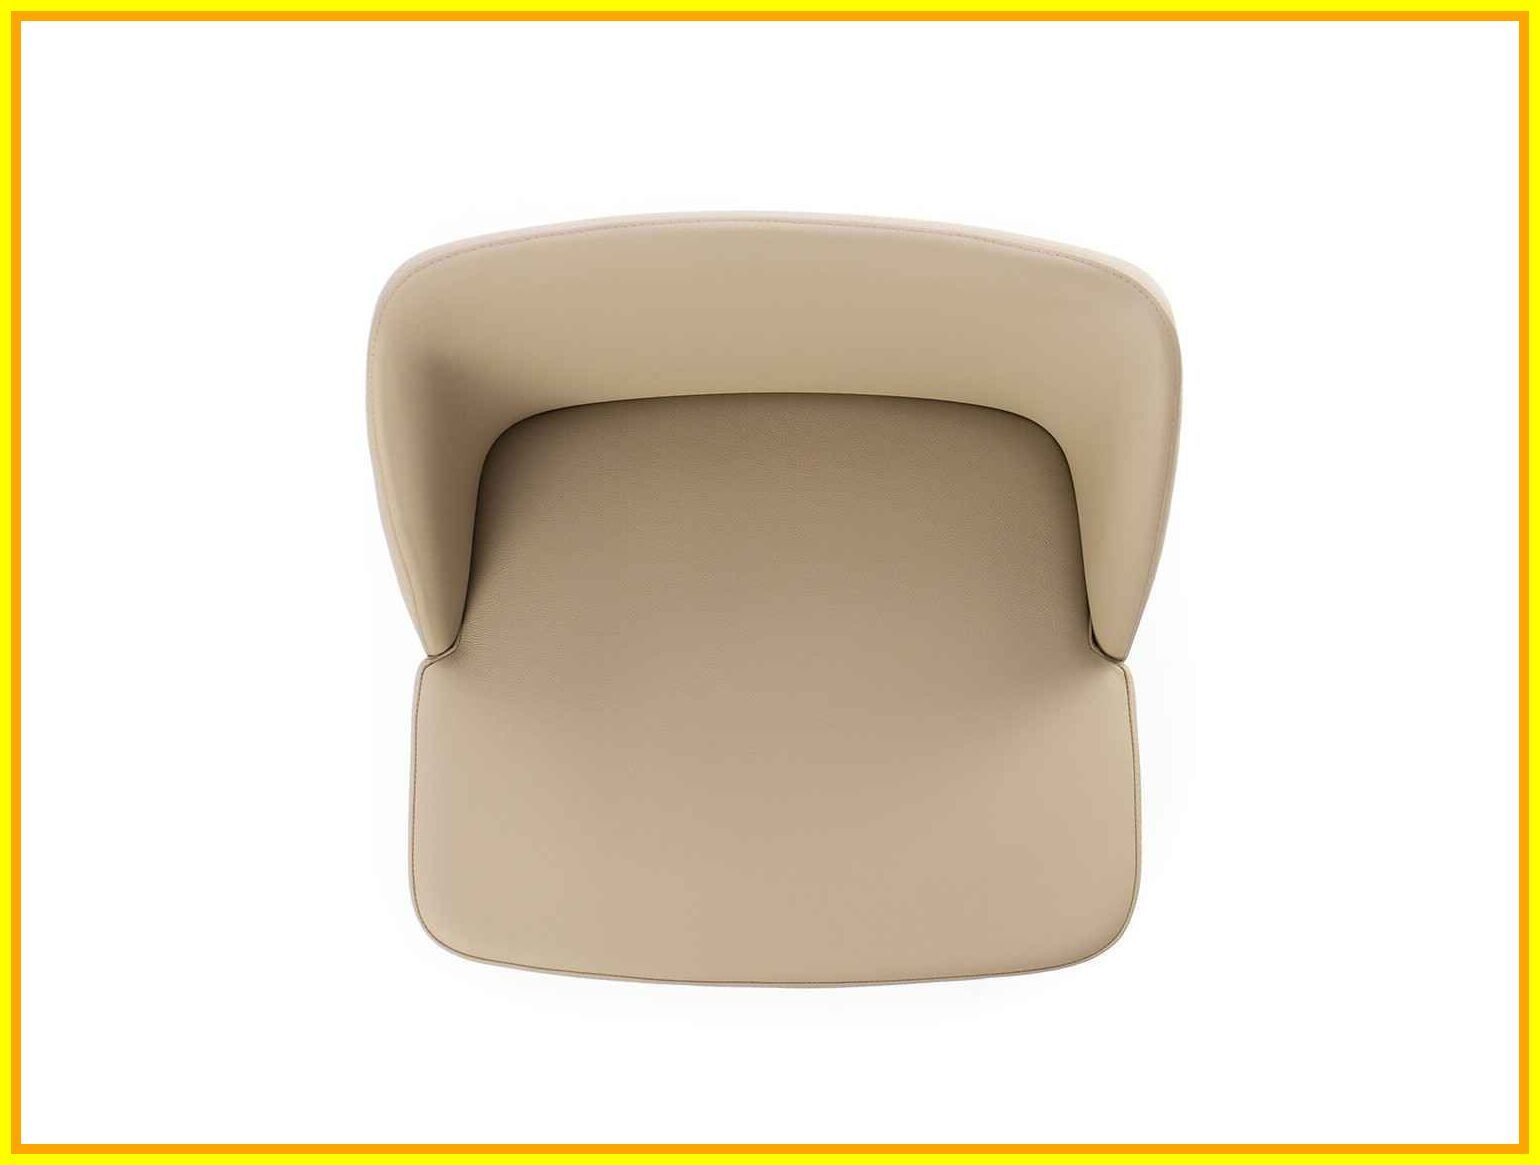 64 Reference Of Chair Top View Sofa In 2020 Top View Chair Drawing Chair